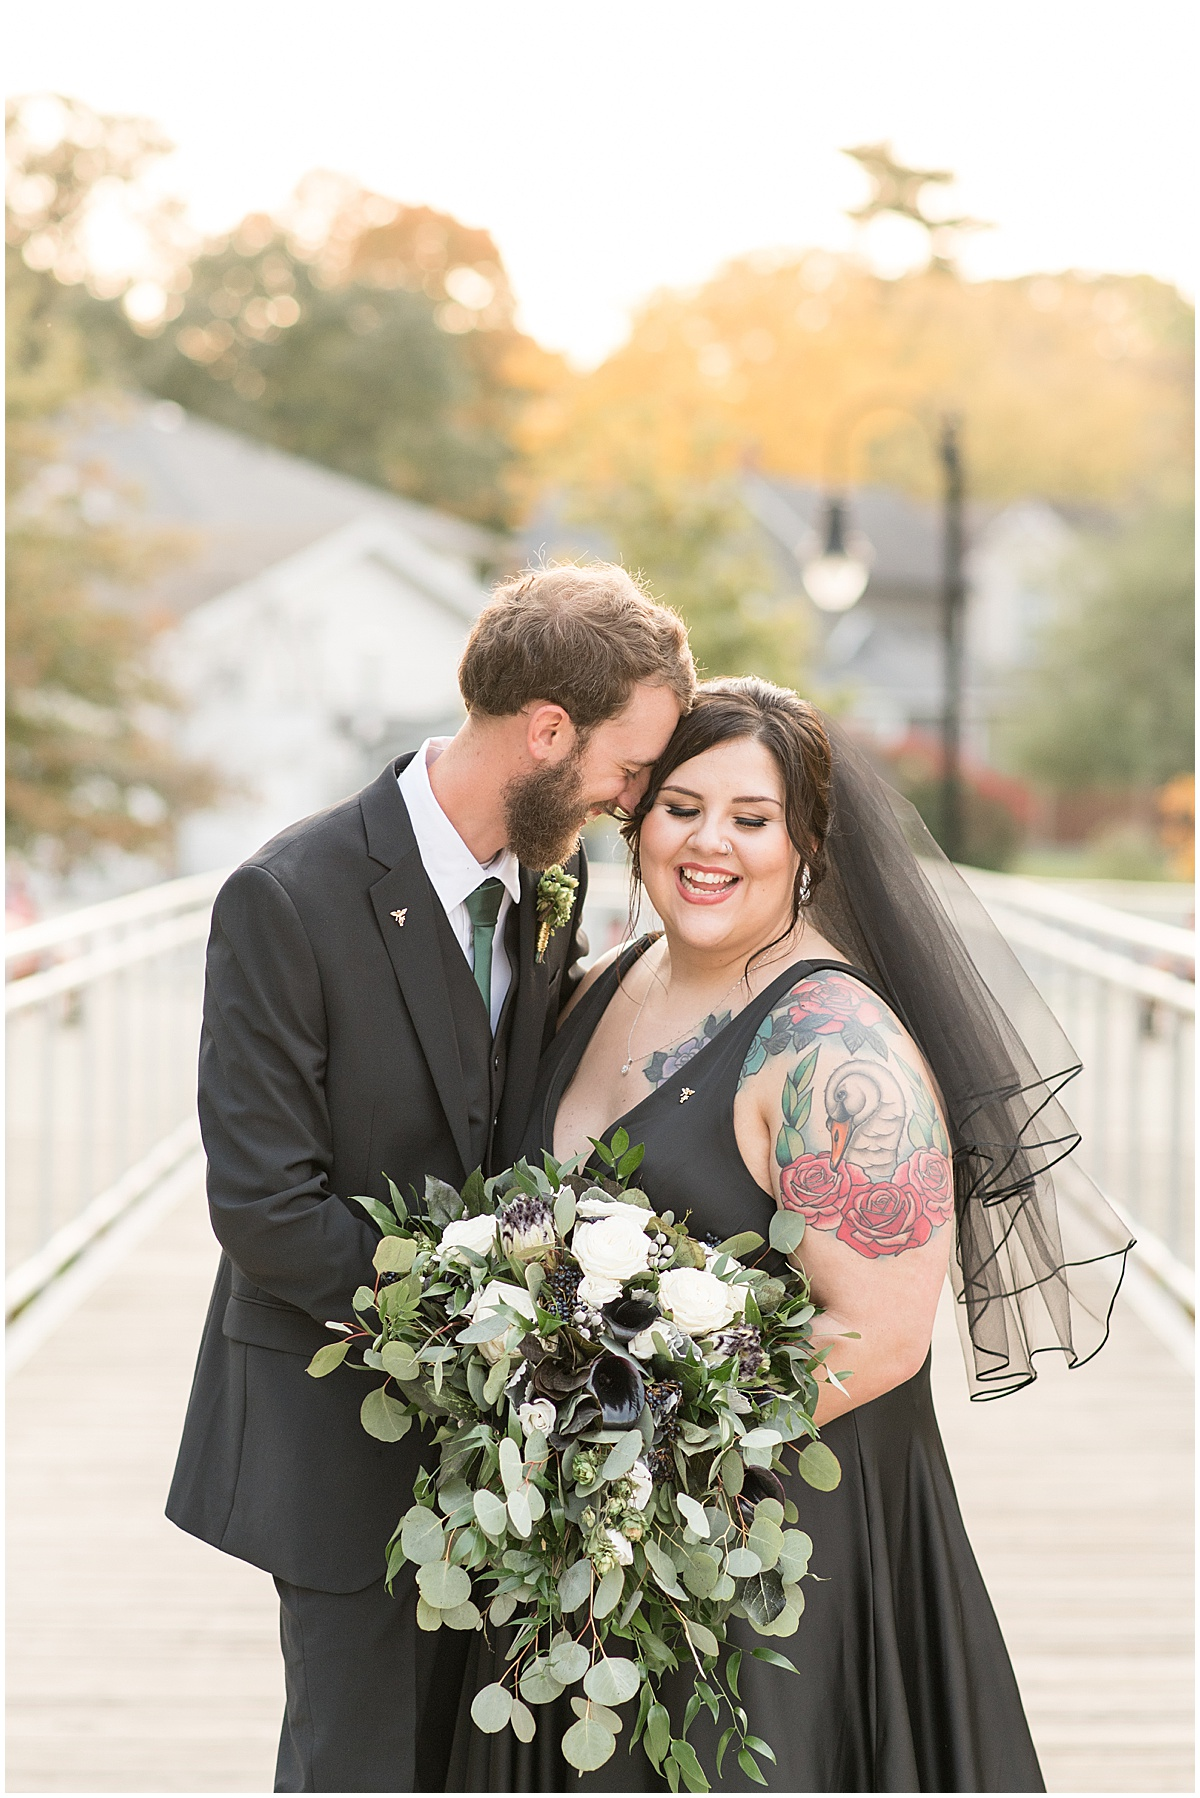 Sunset photos of bride and groom in Rensselaer, Indiana